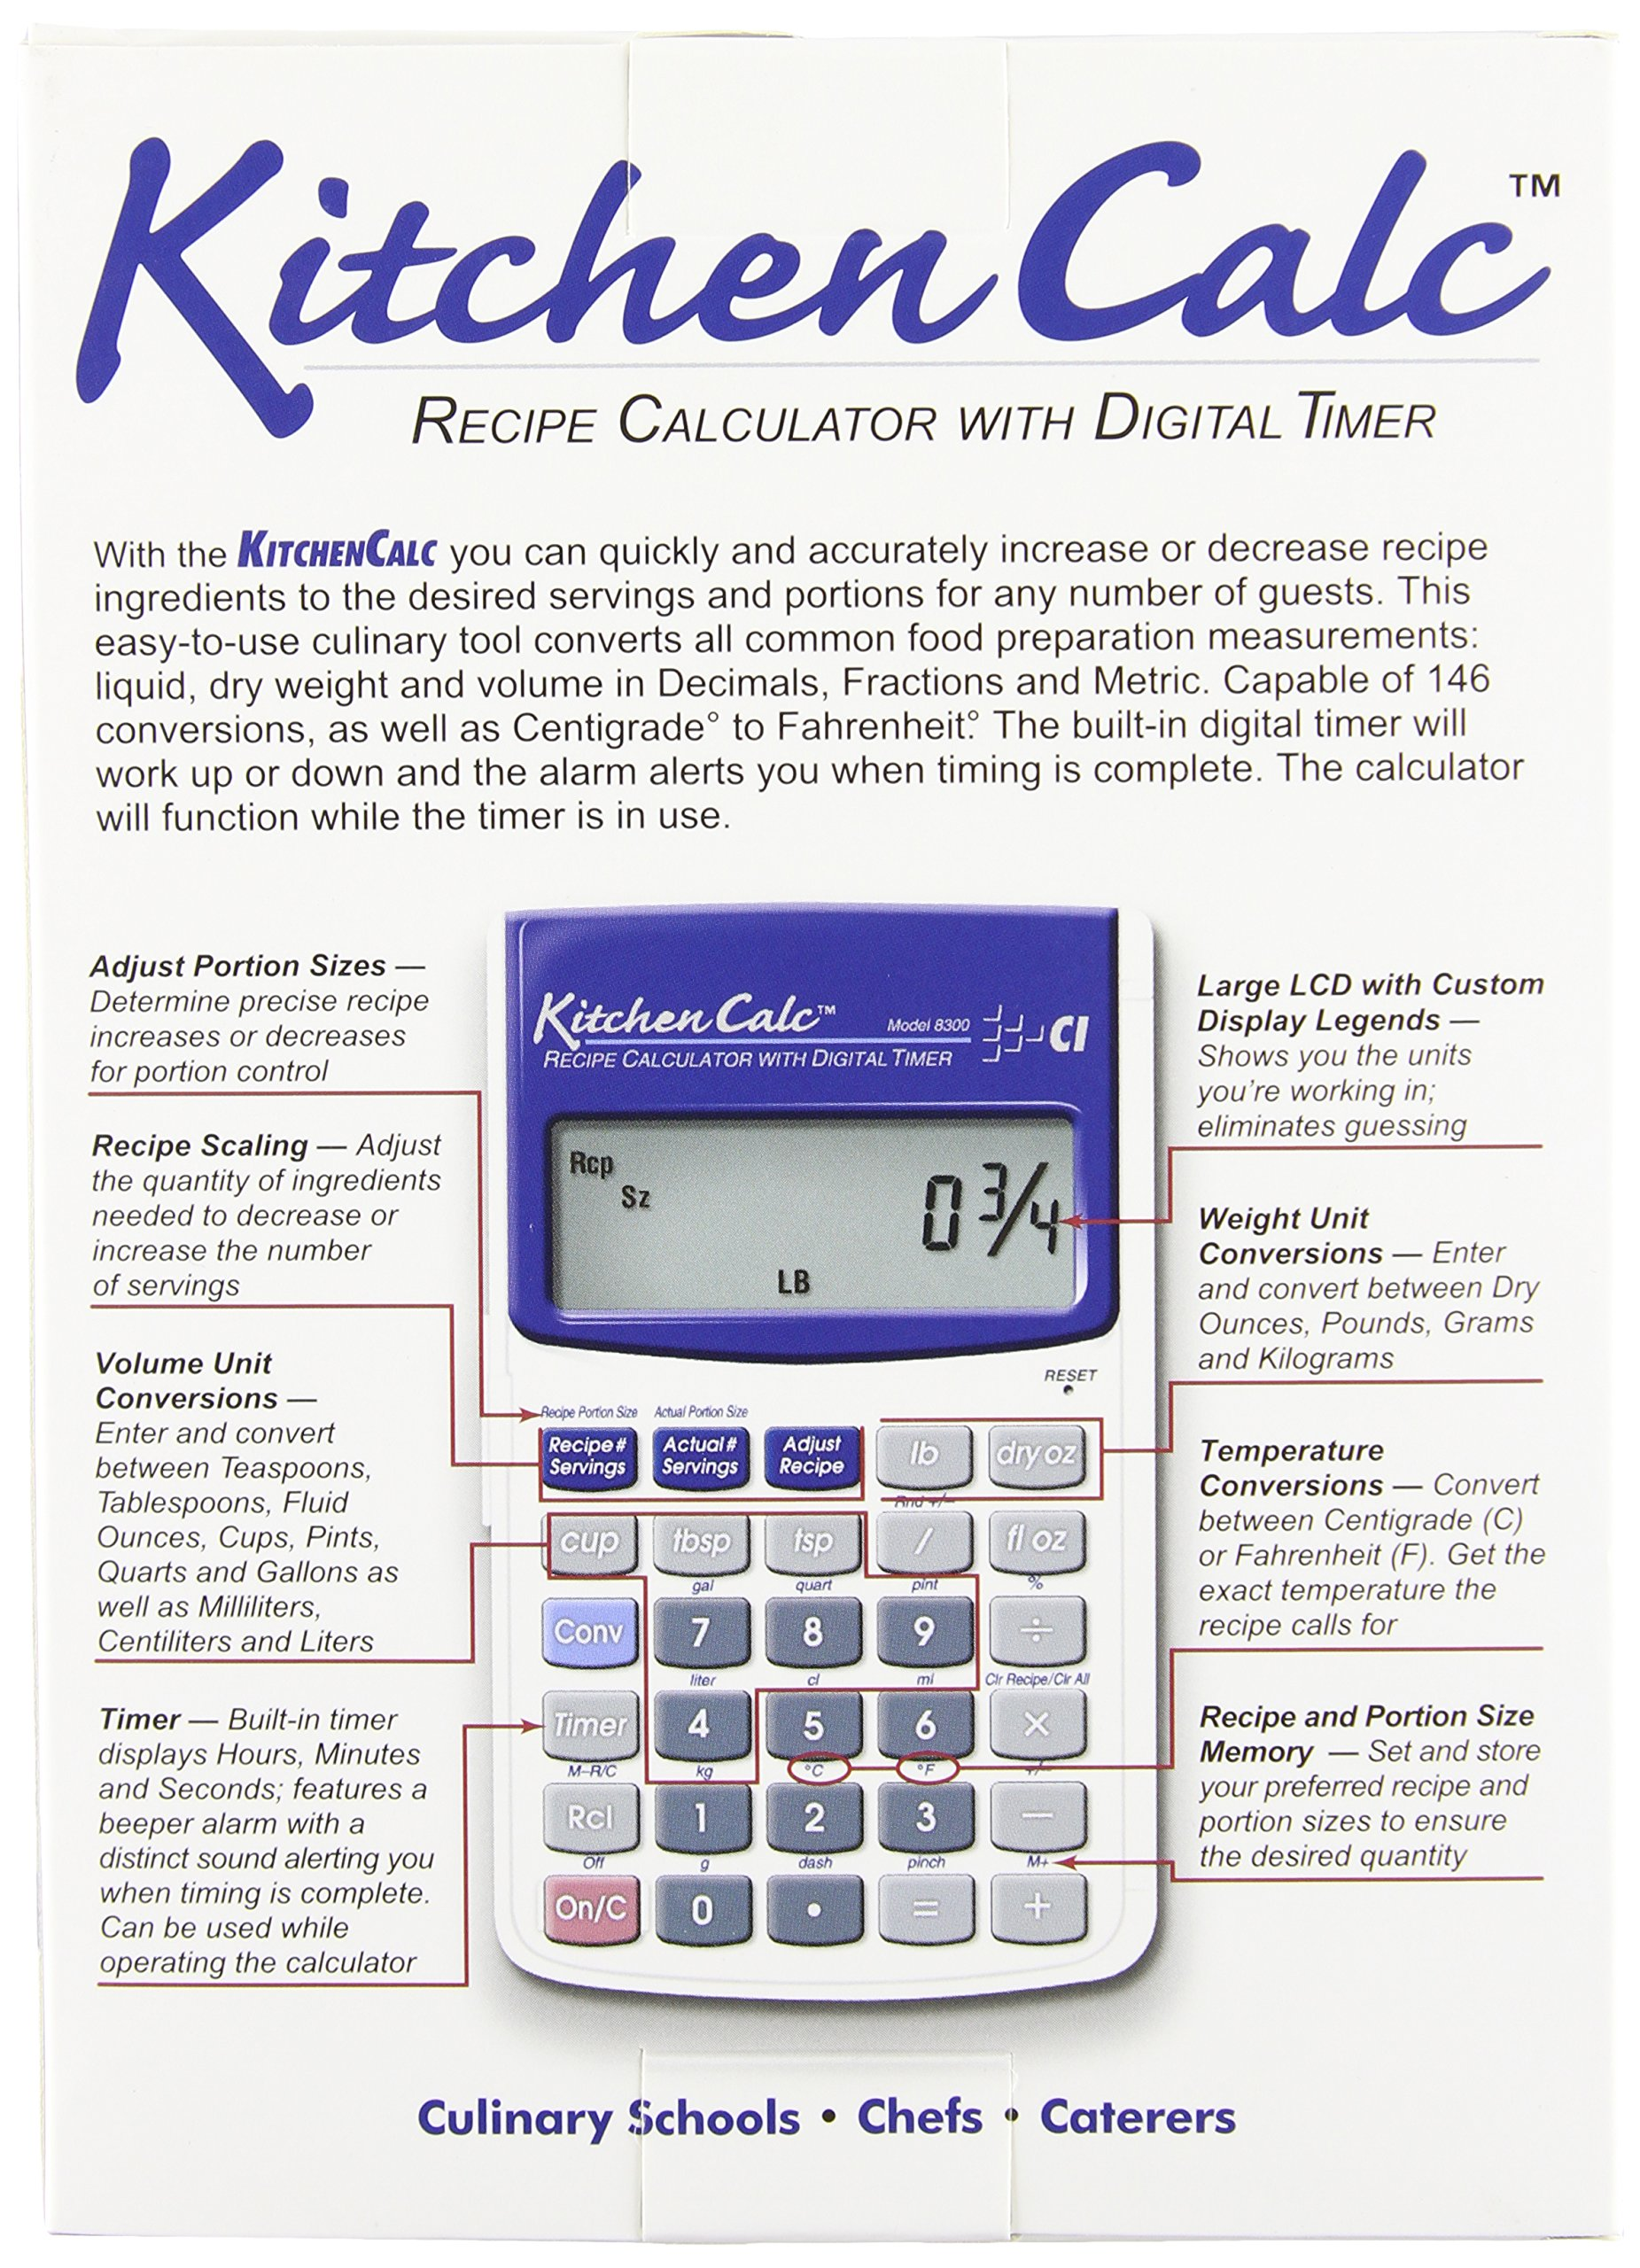 Calculated industries kitchencalc 8300 recipe calculator with.